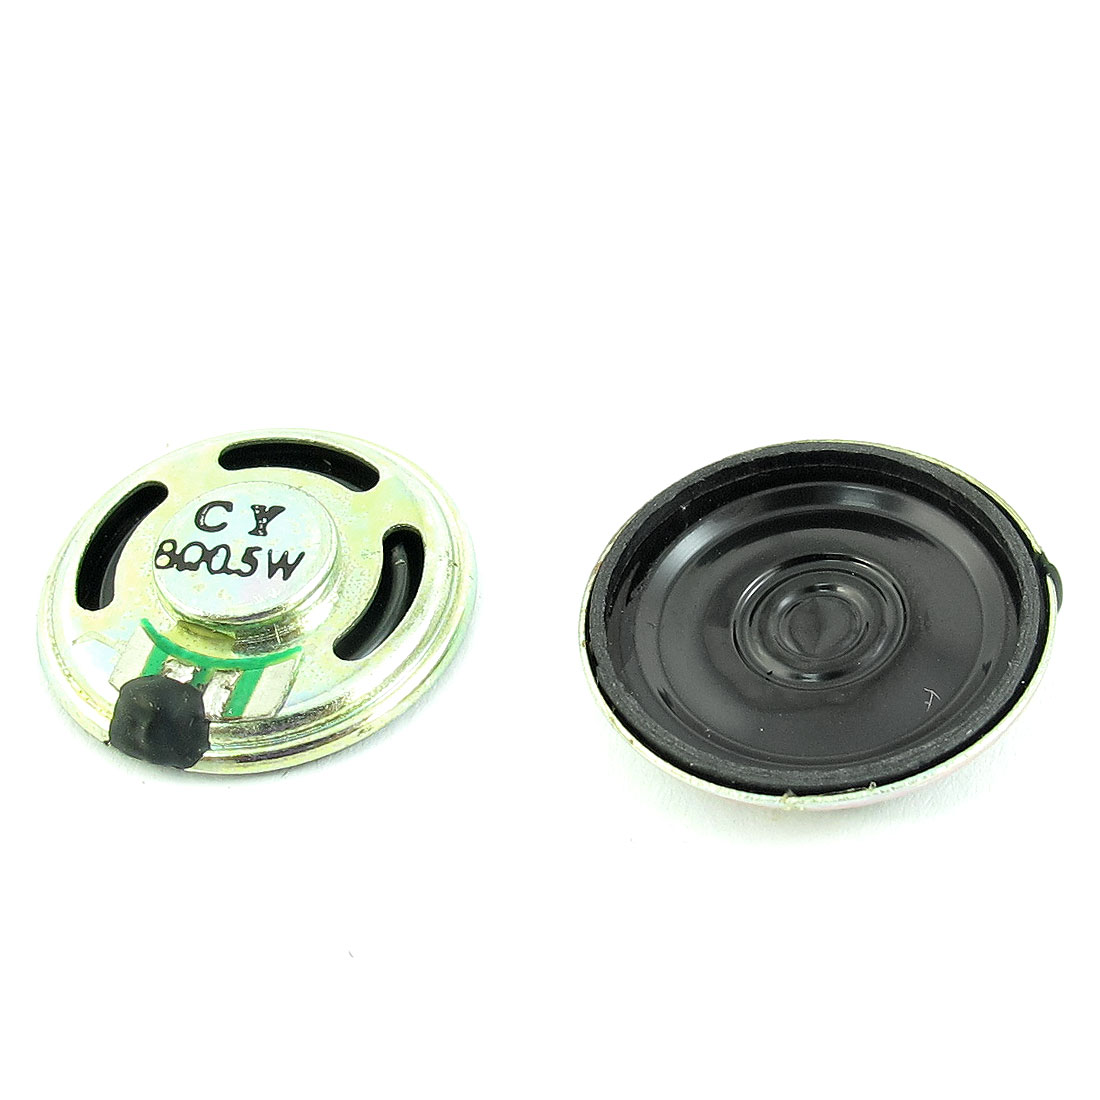 2 Pcs 0.25W 8 Ohm 23mm Diameter Metal Shell Magnet Type Speaker Loudspeaker Horn for Radio Electric Toys